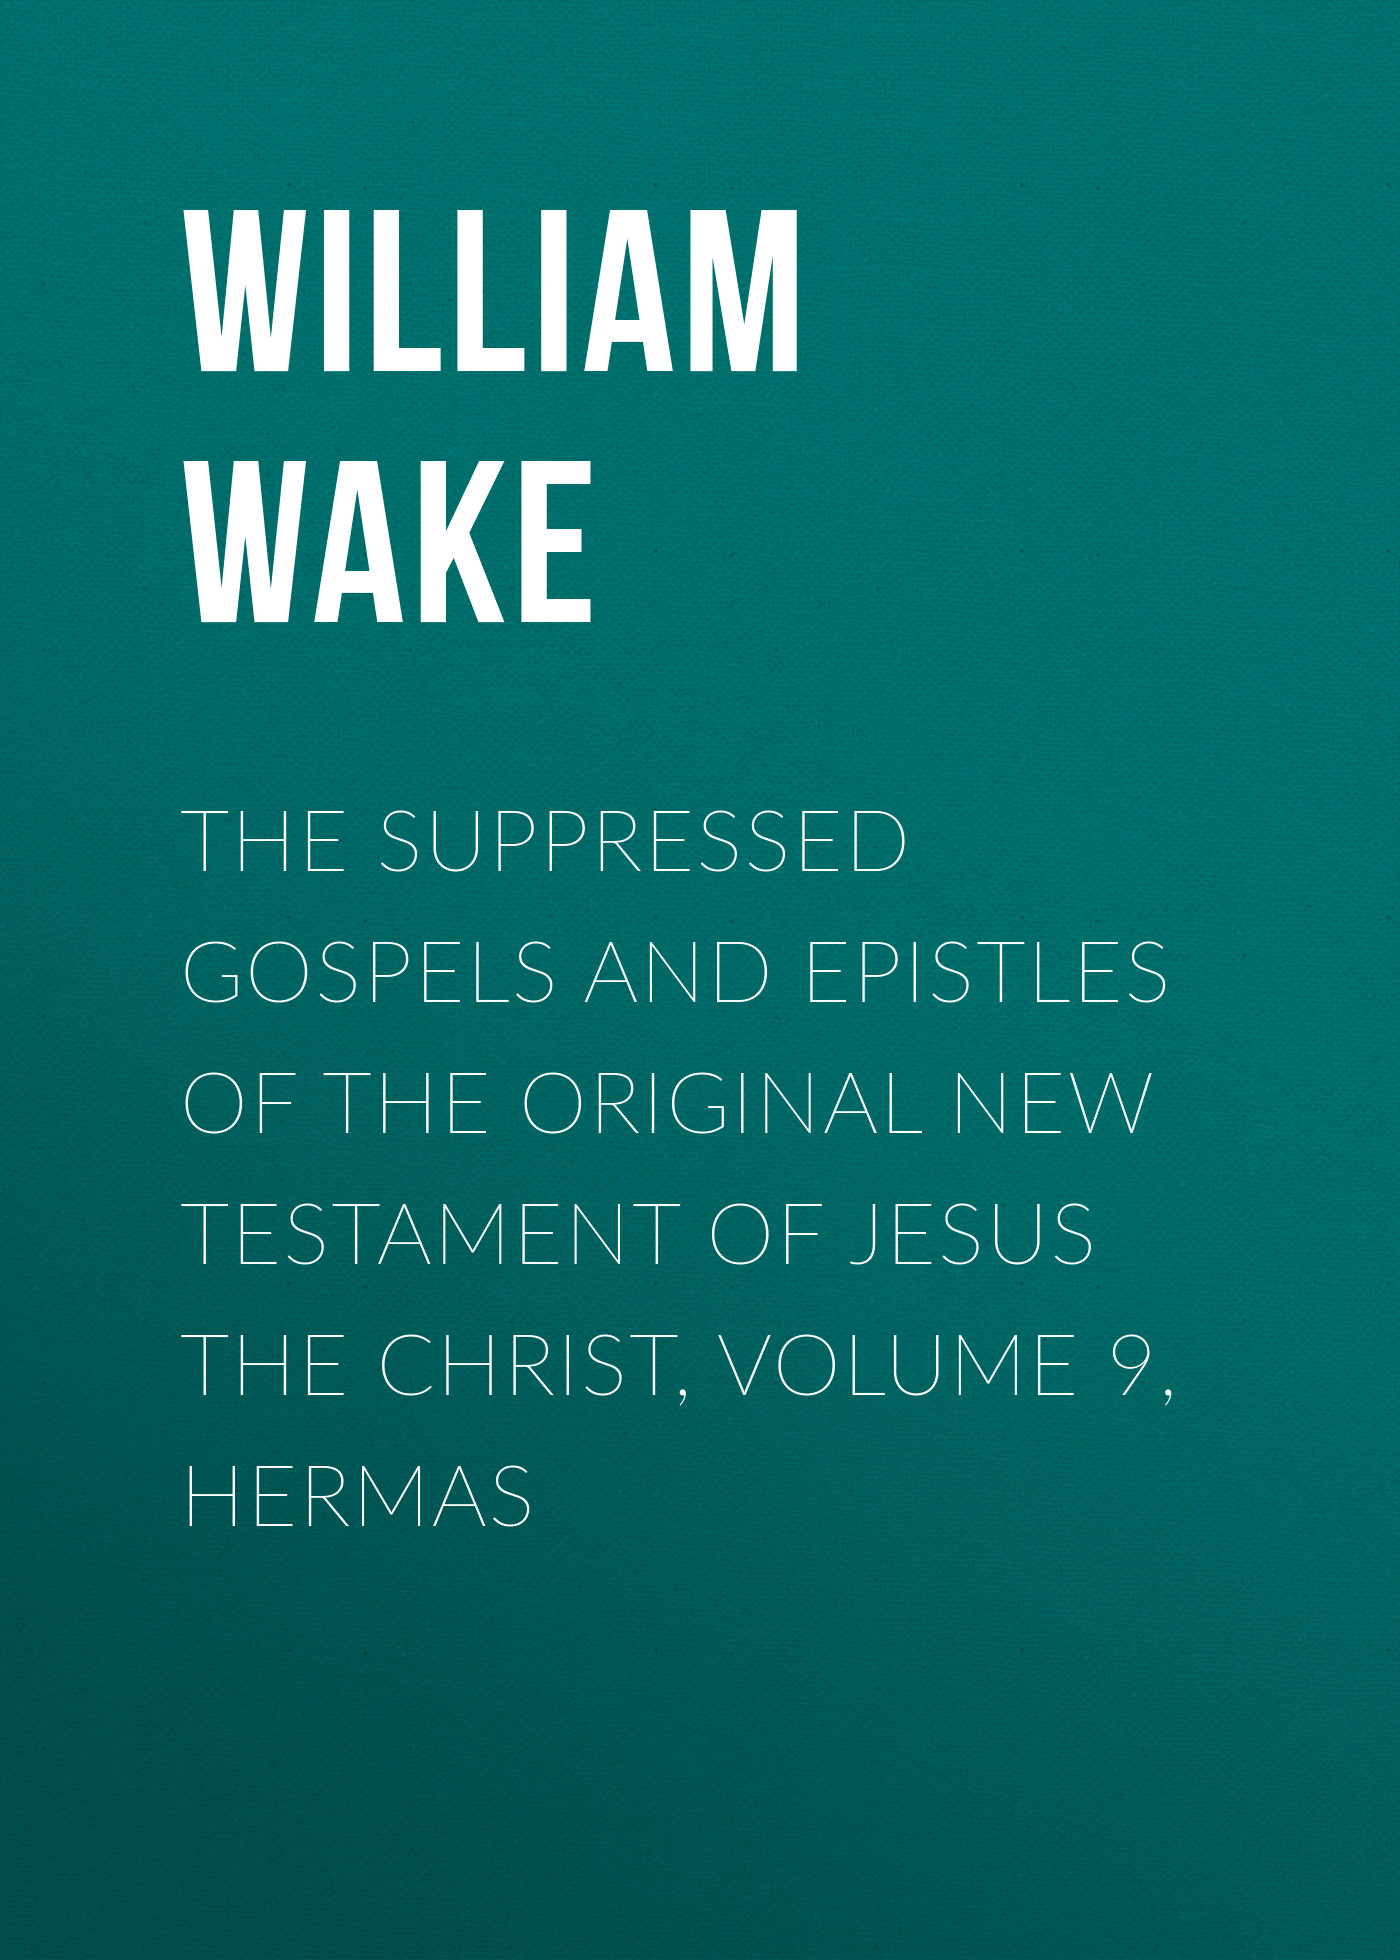 William Wake The suppressed Gospels and Epistles of the original New Testament of Jesus the Christ, Volume 9, Hermas william wake the suppressed gospels and epistles of the original new testament of jesus the christ volume 3 infancy of jesus christ page 8 page 6